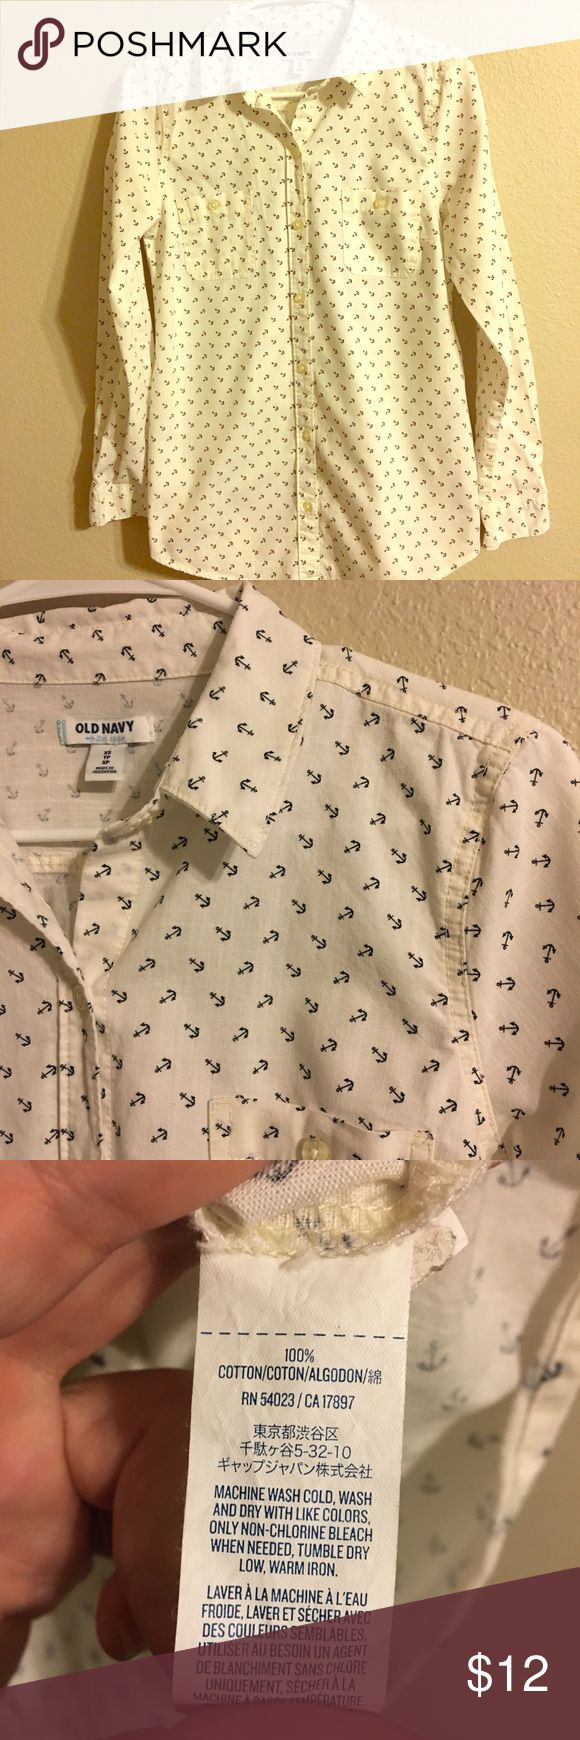 Old Navy Anchor shirt size XS Measures 19 inches pit to pit Measures 26 inches in length Old Navy Tops Button Down Shirts